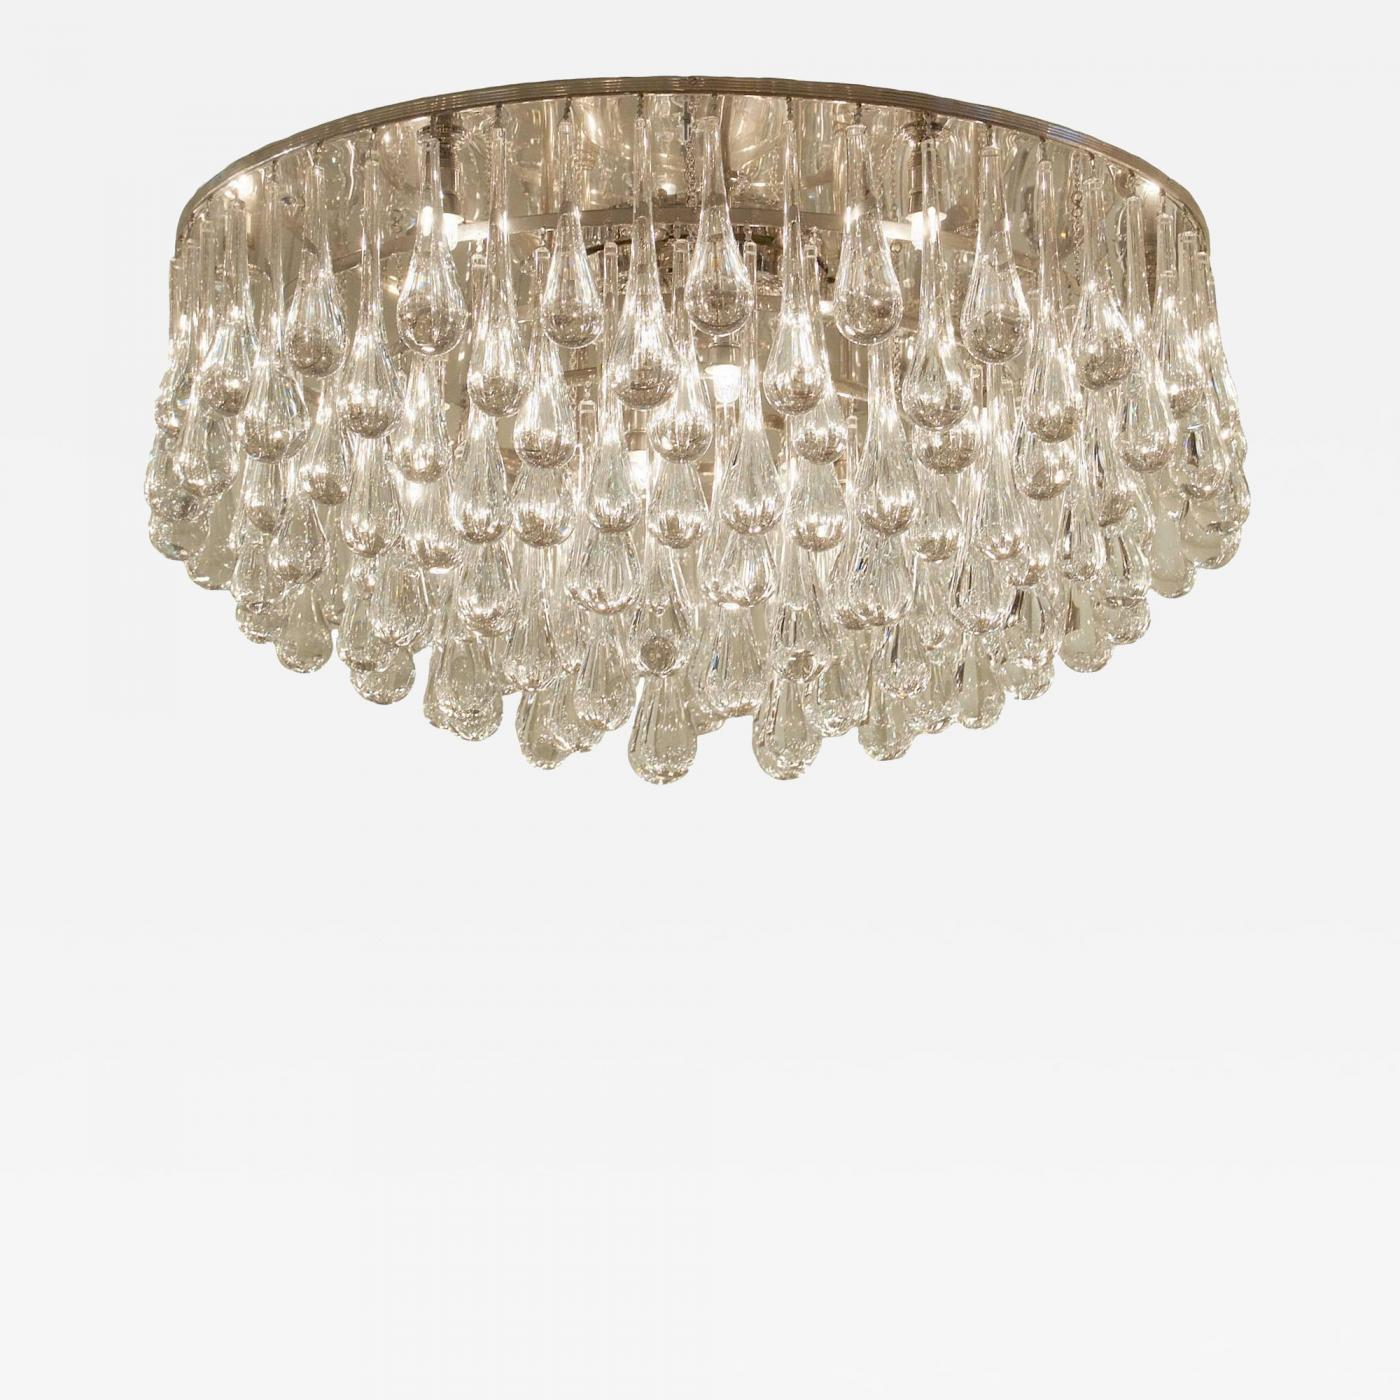 ceilings garden home ceiling mount crystal product light chandelier with flush semi black antique shade antonia bronze iron